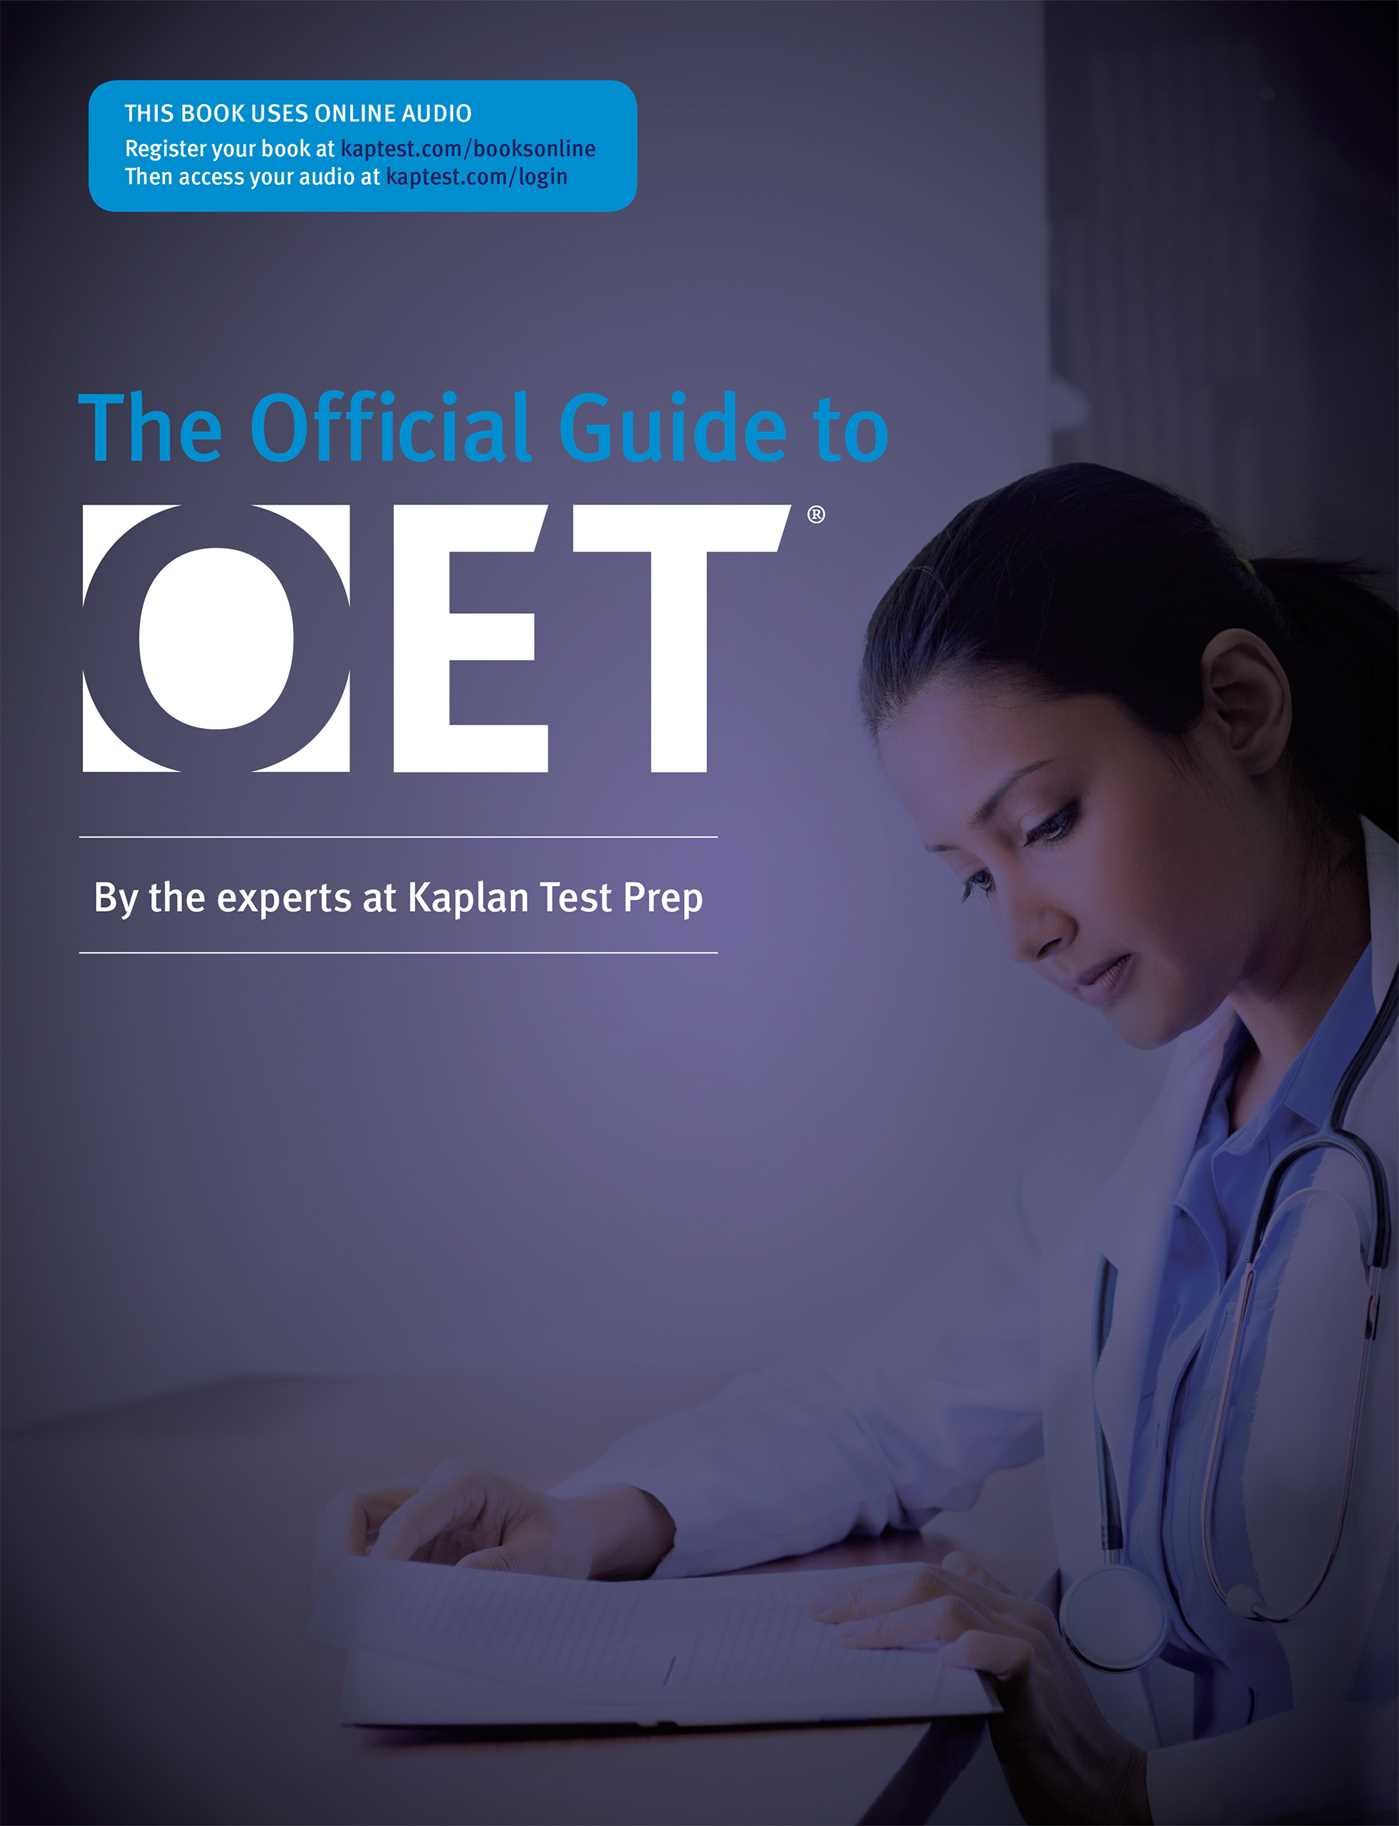 Official guide to oet 9781506247243 hr